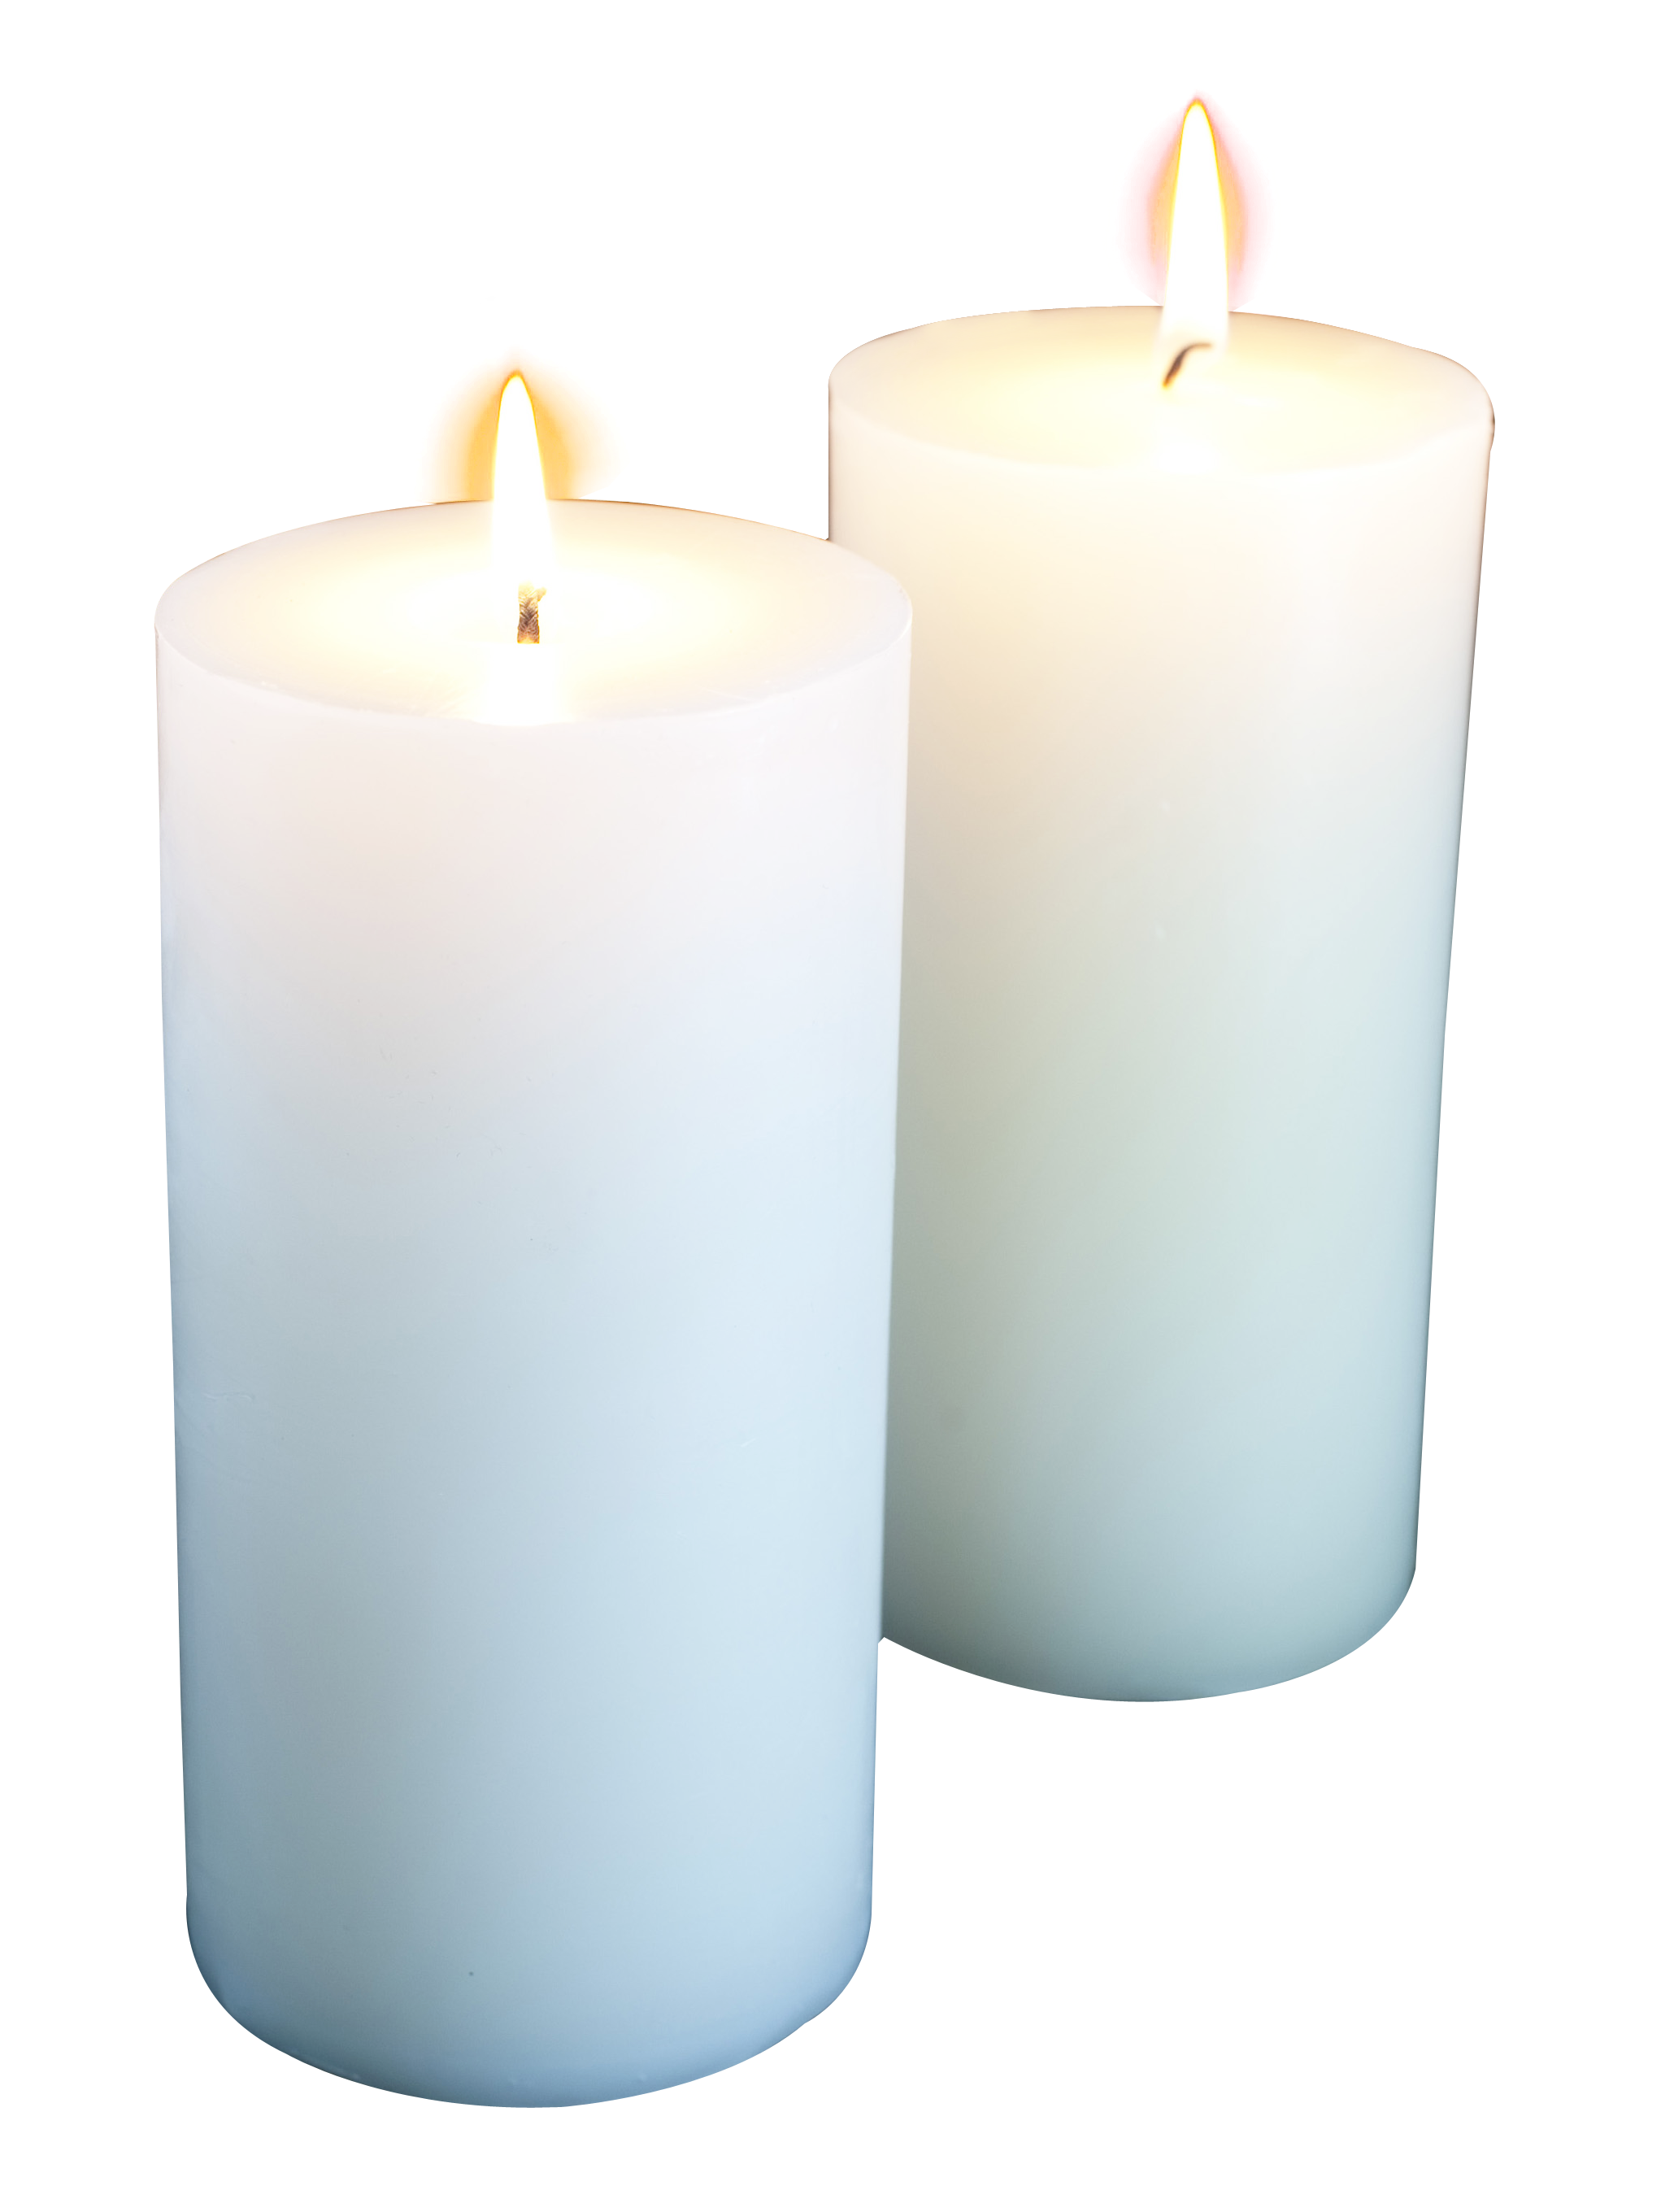 Transparent candles background. Candle png image purepng